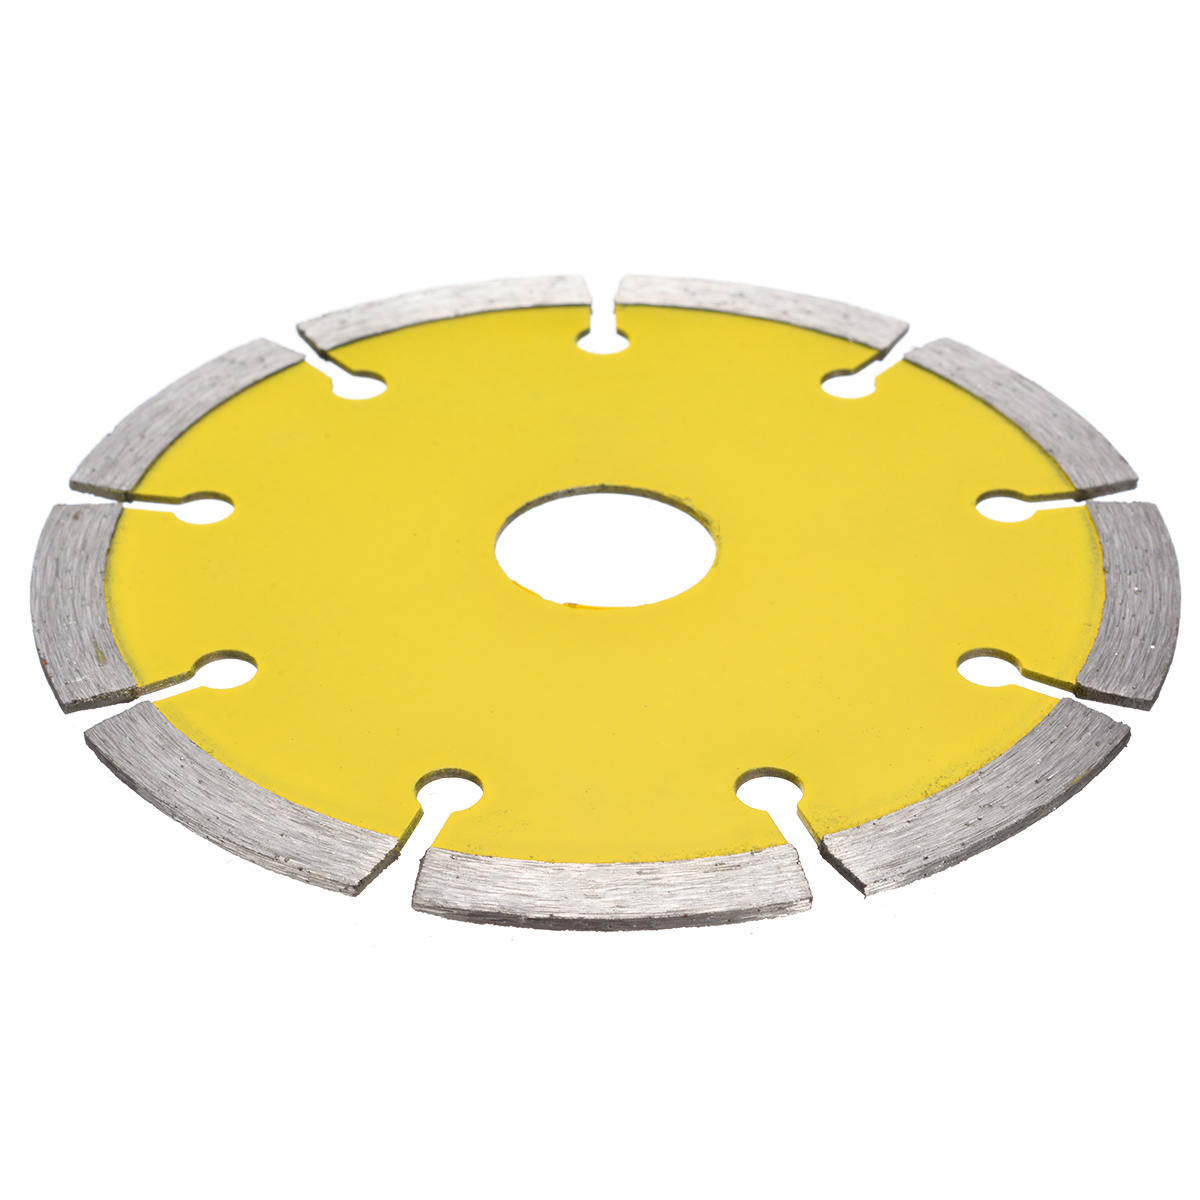 Mayitr 1pc 115mm Diamond Saw Blades Circular Saw Blade Dry Cutting Disc For Concrete Ceramic Brick Marble Stone Saw Tool